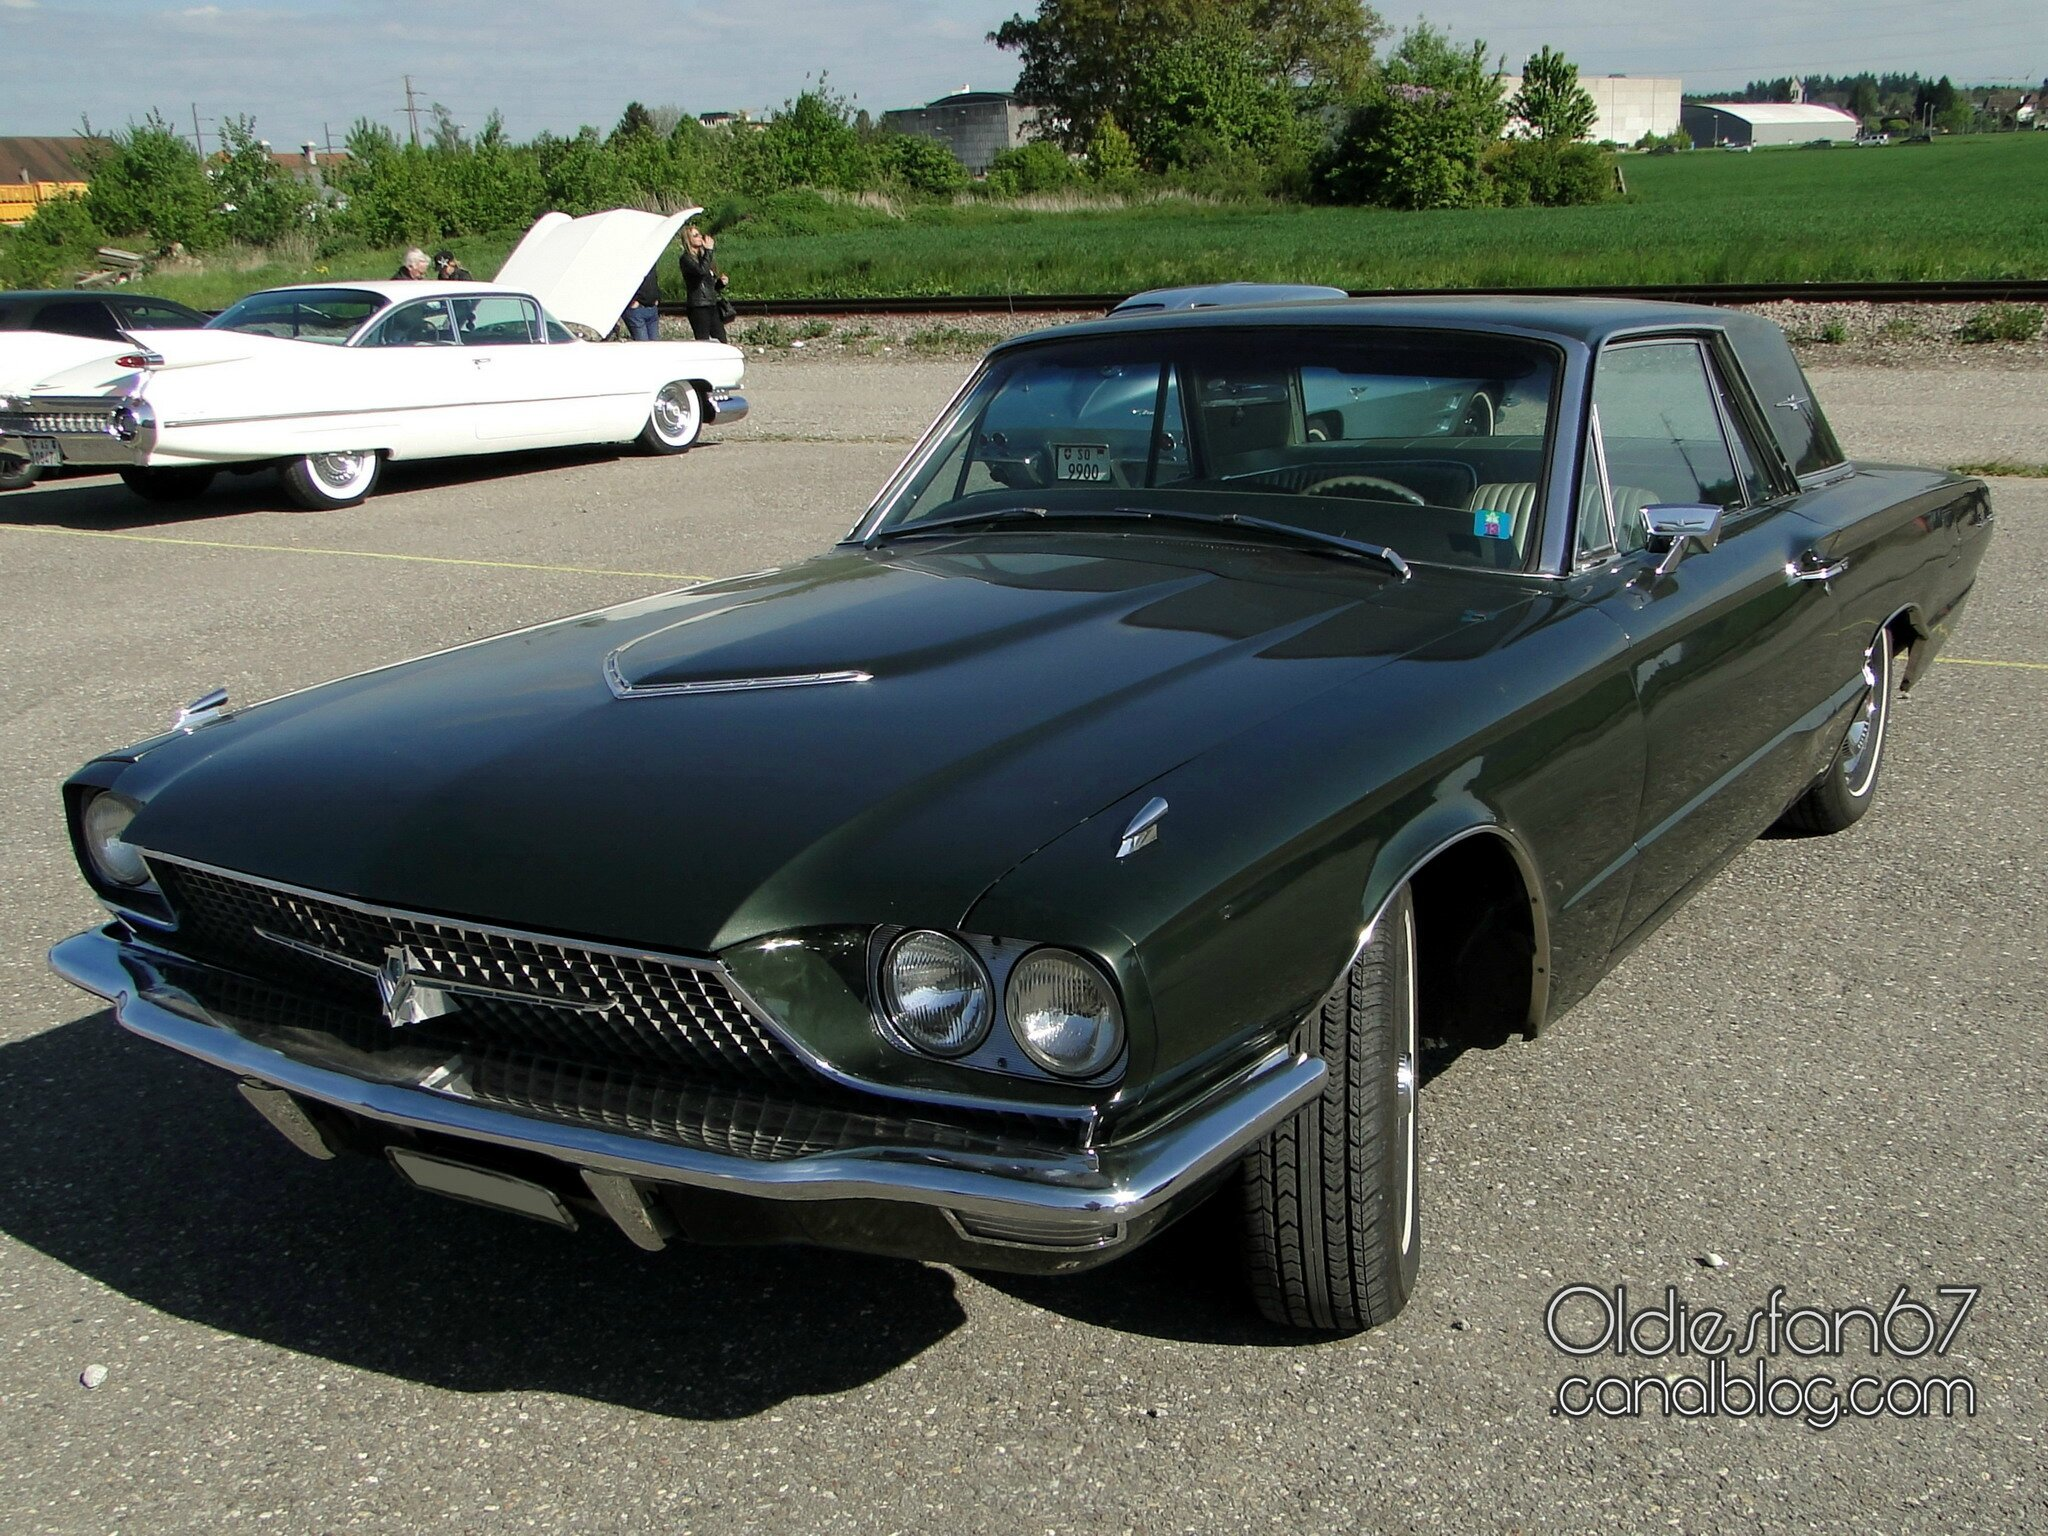 ford thunderbird hardtop coupe 1966 oldiesfan67 mon blog auto. Black Bedroom Furniture Sets. Home Design Ideas